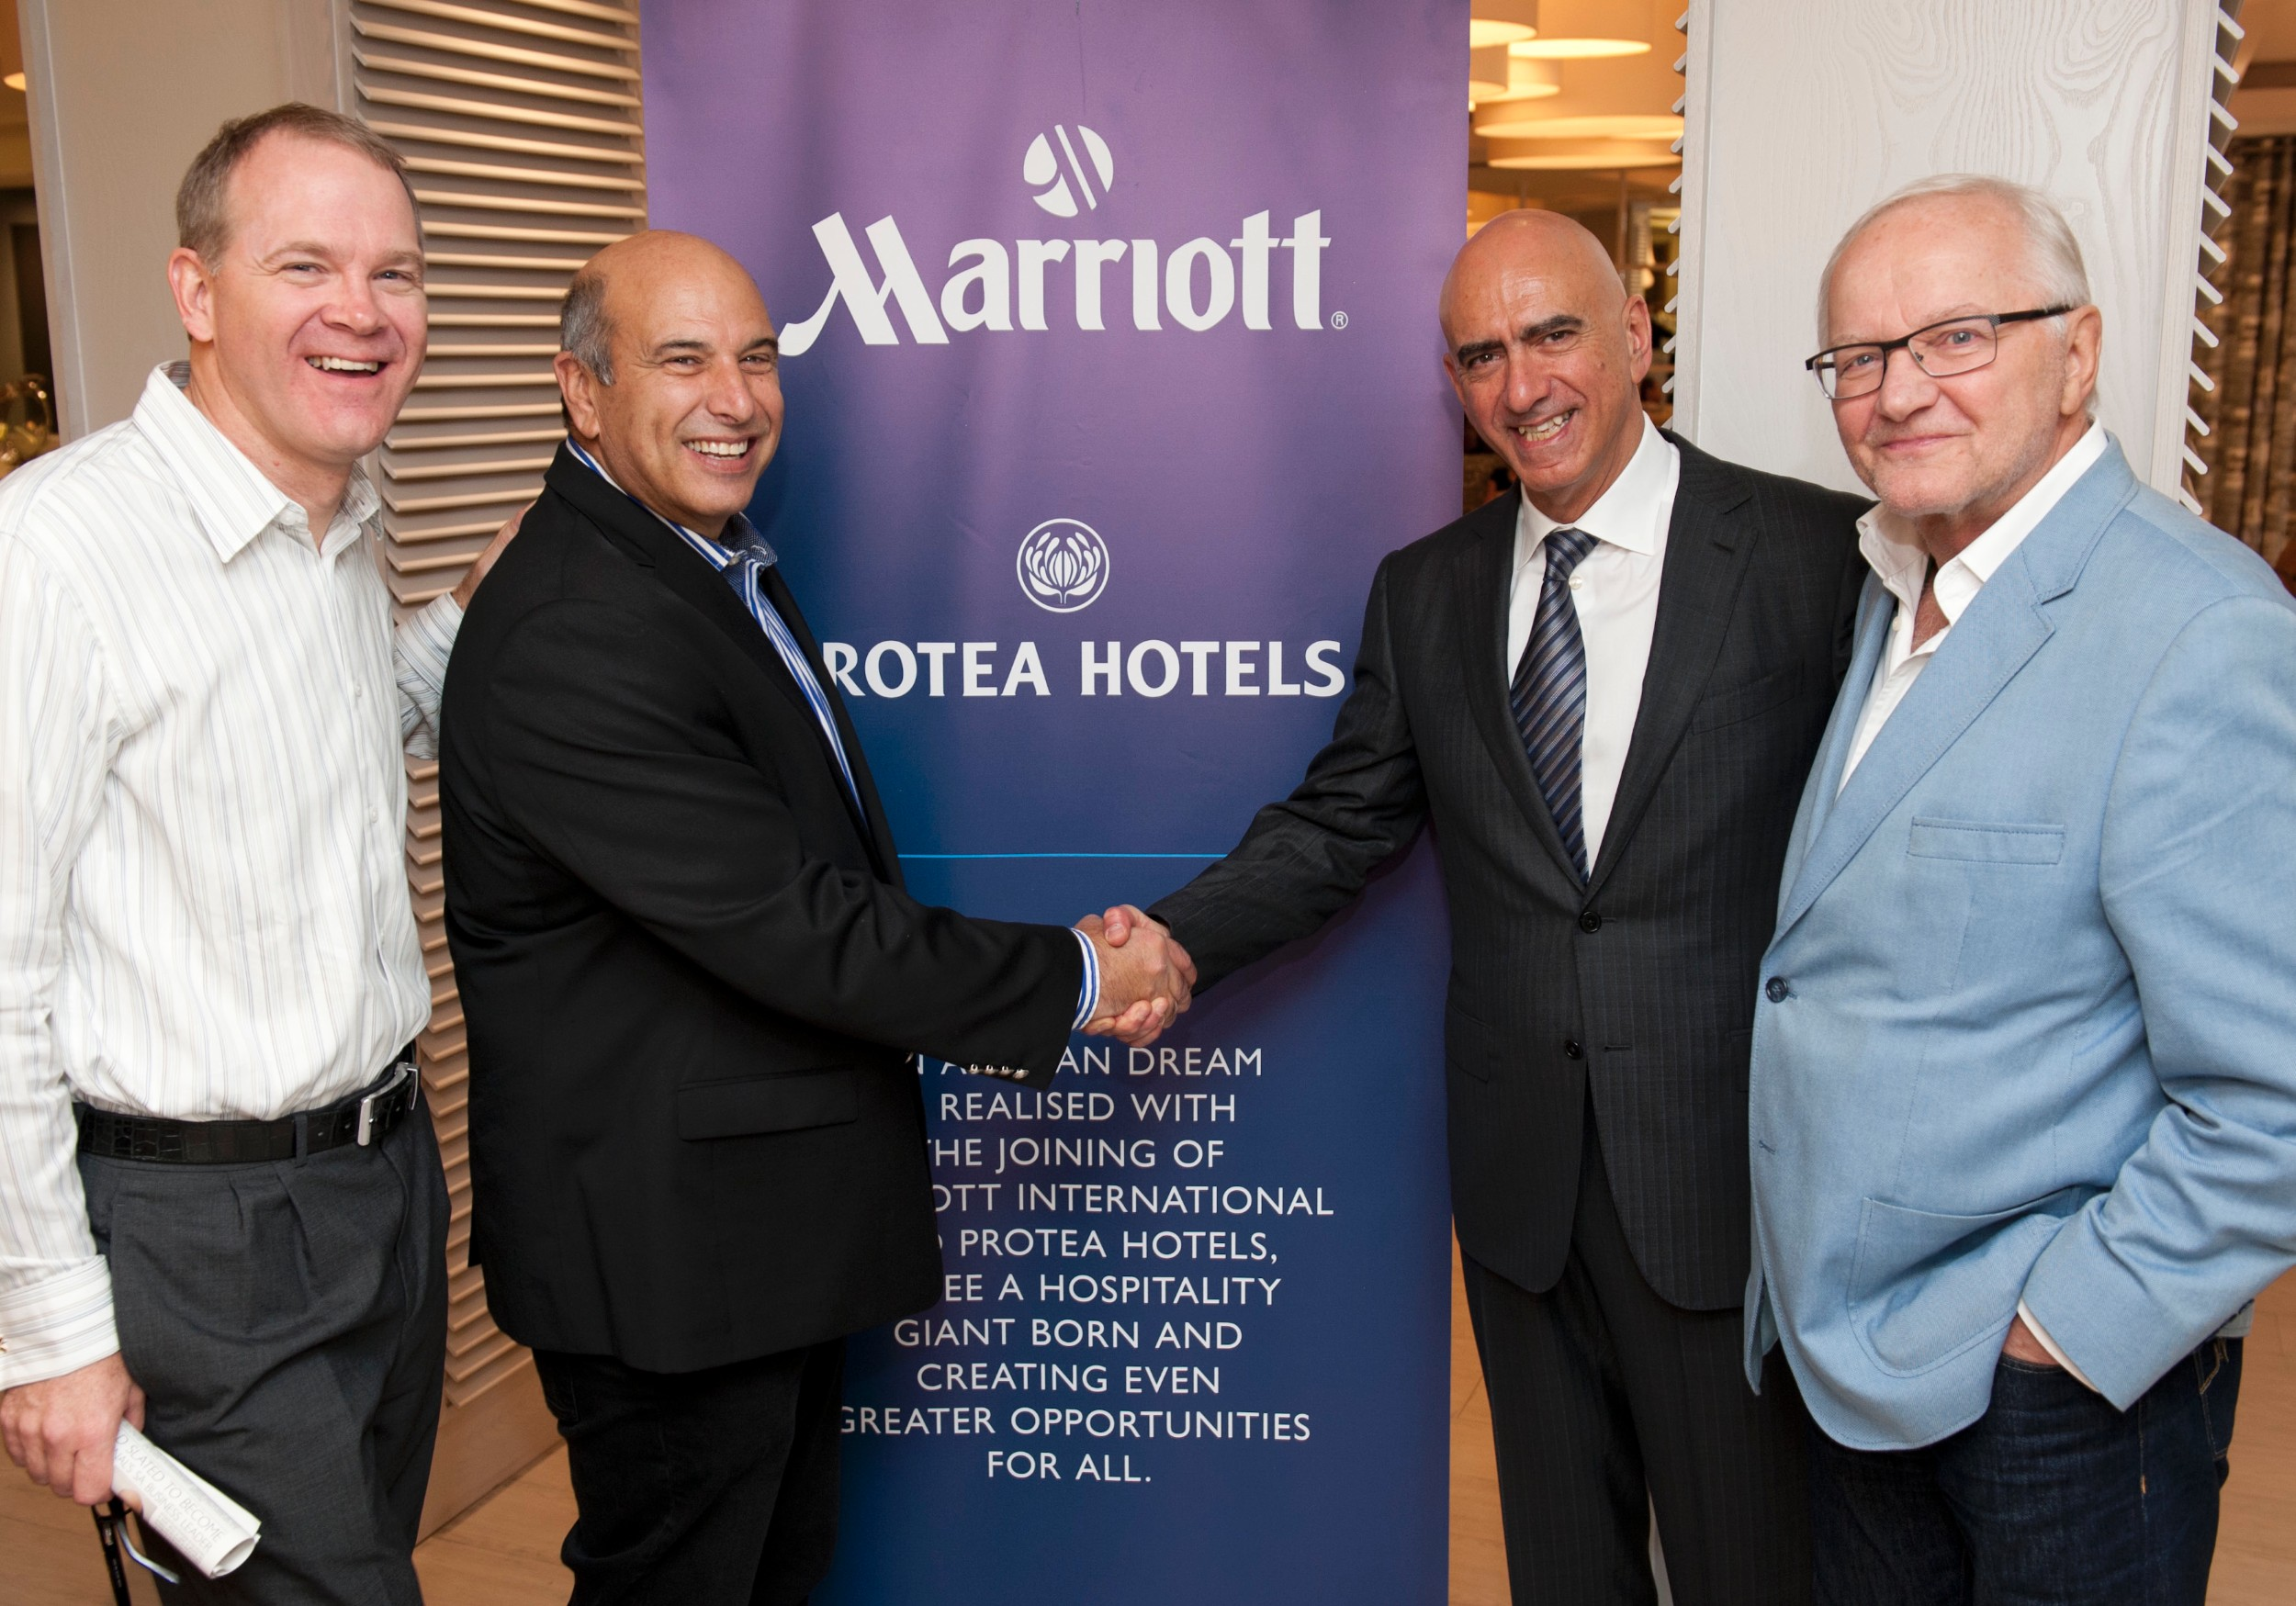 Marriott International a finalisé l'acquisition de Protea Hospitality Group le 1er avril 2014 - Photo DR